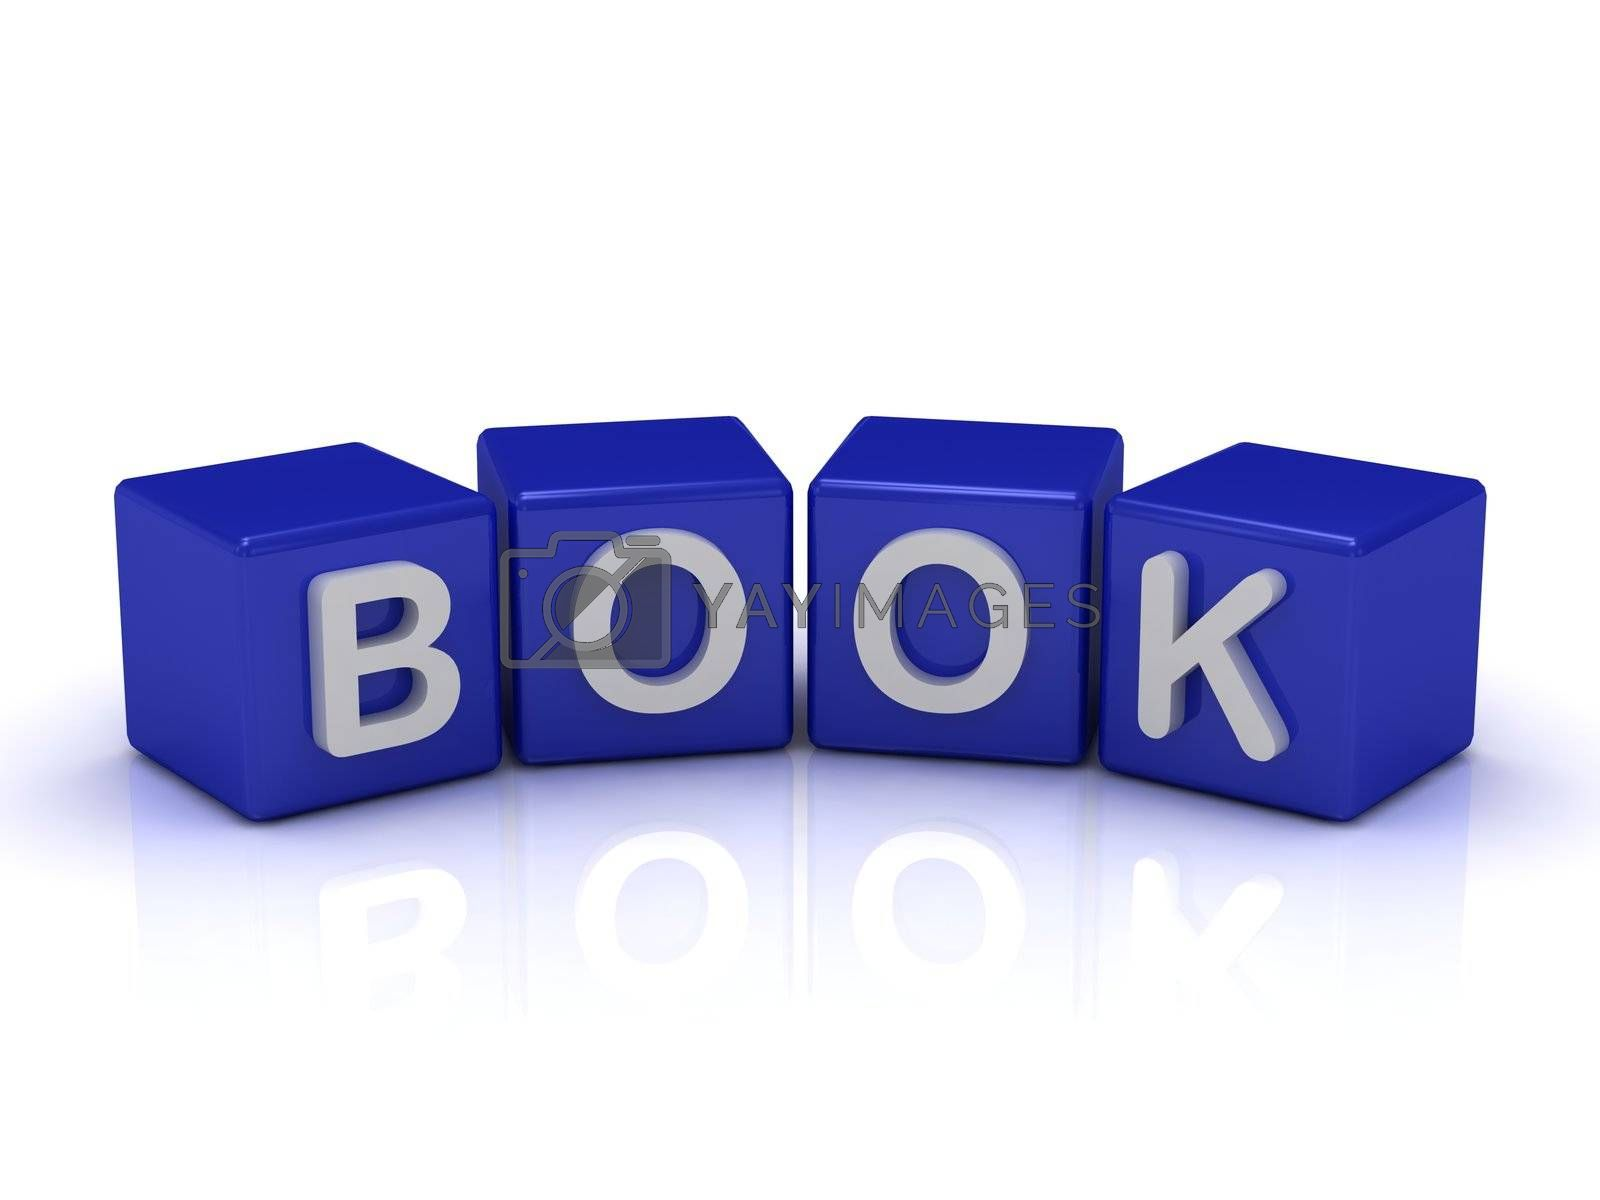 BOOK word on blue cubes on an isolated white background